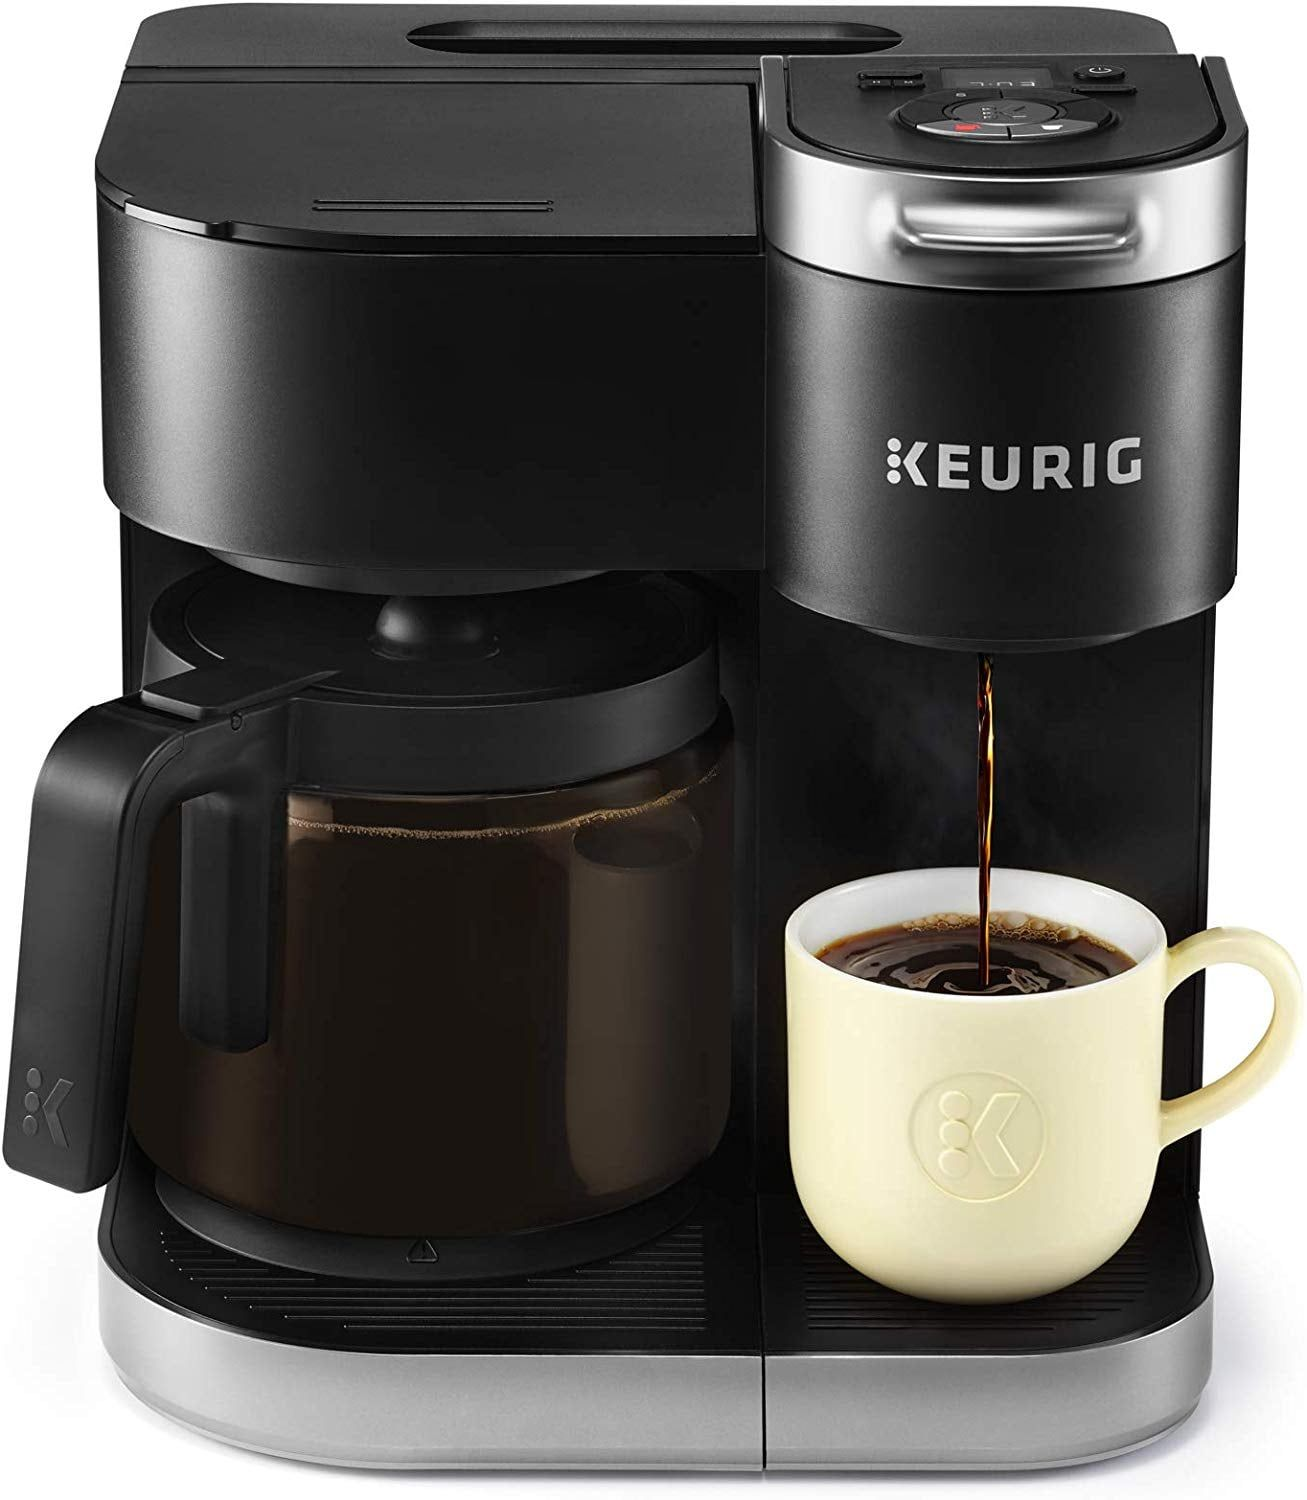 Keurig KDuo Coffee Maker in 2020